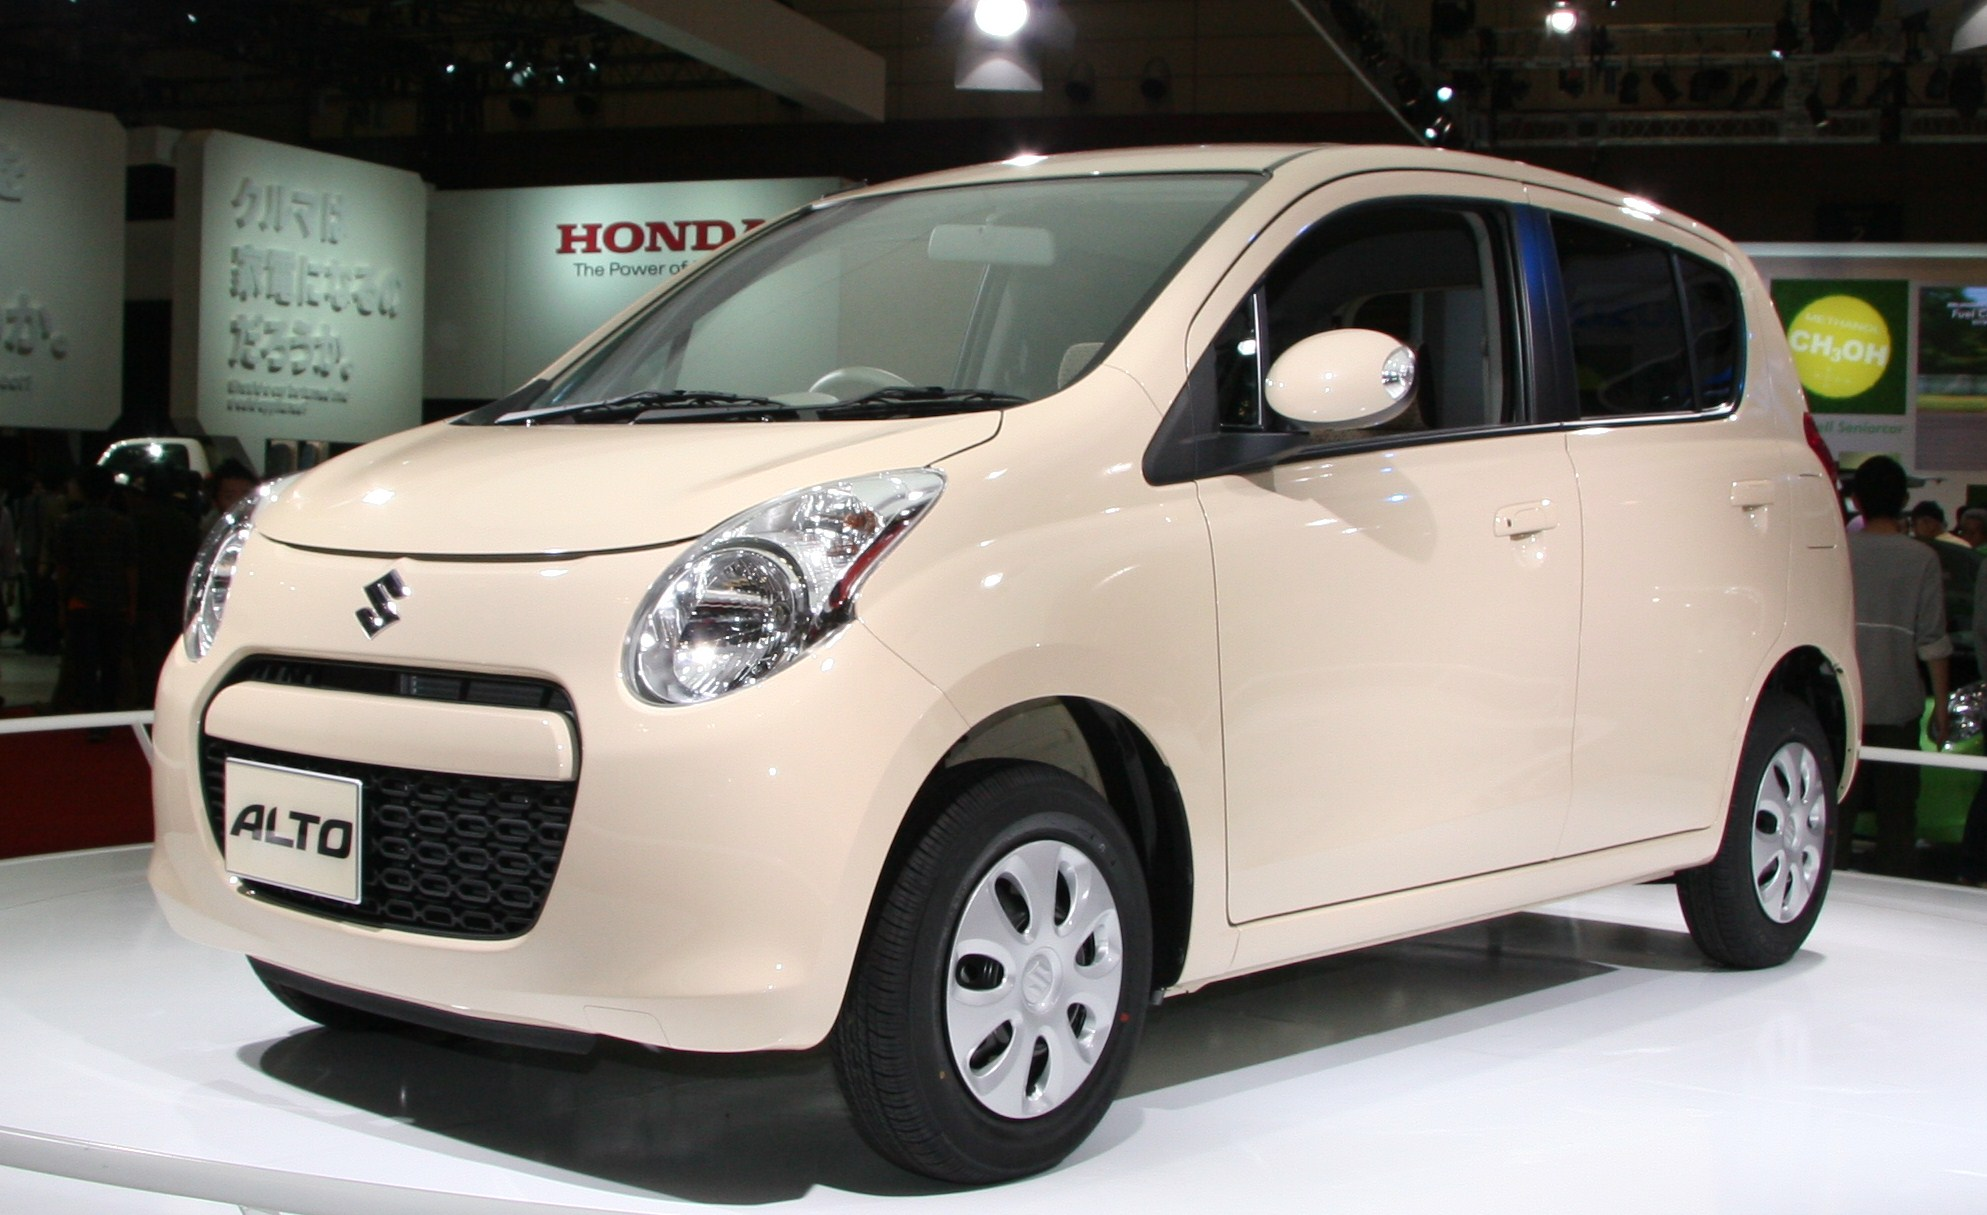 Swift 2016 Price In Pakistan >> File:7th generation Suzuki Alto.jpg - Wikimedia Commons